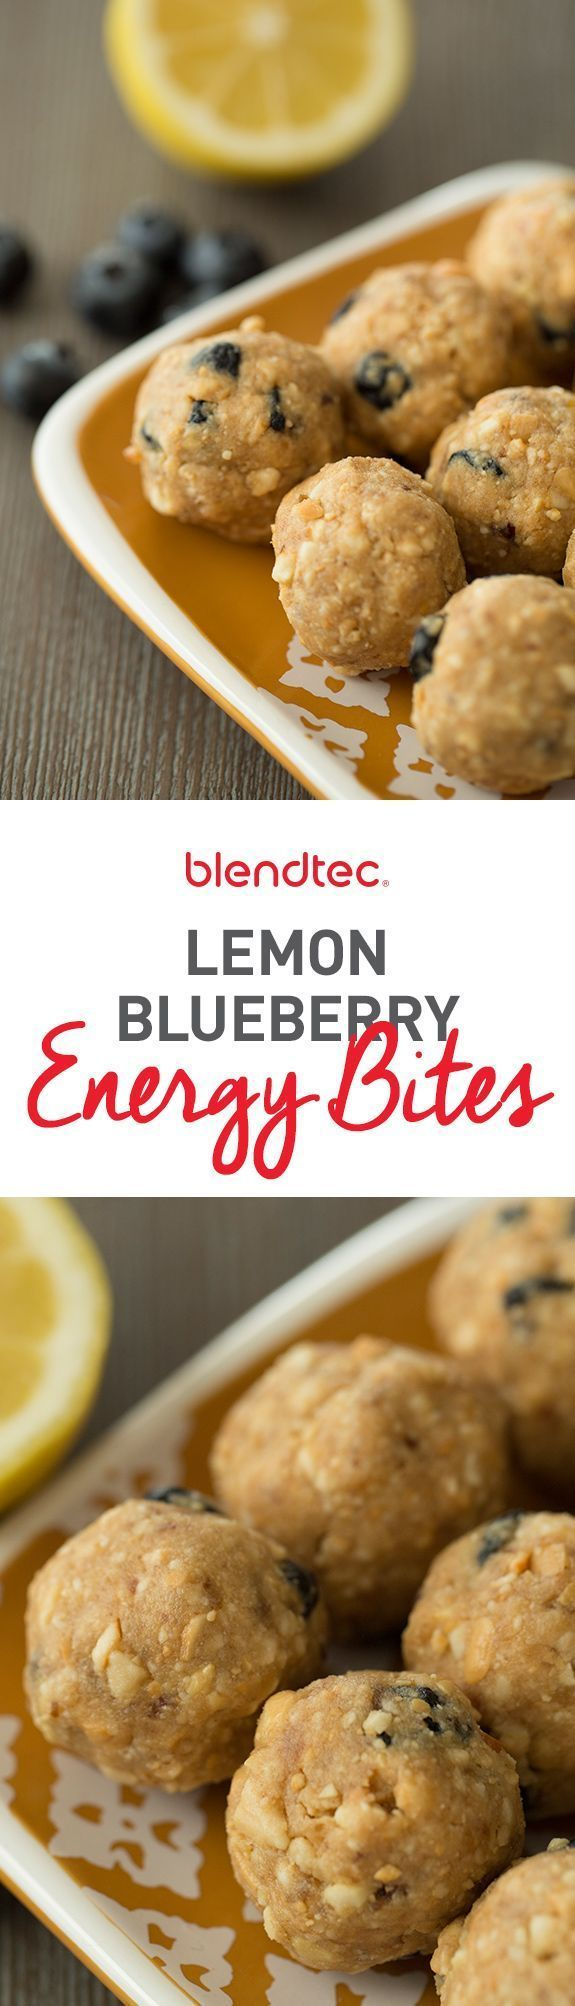 These lemon-infused snacks are sweetened with dates and are mighty refreshing.